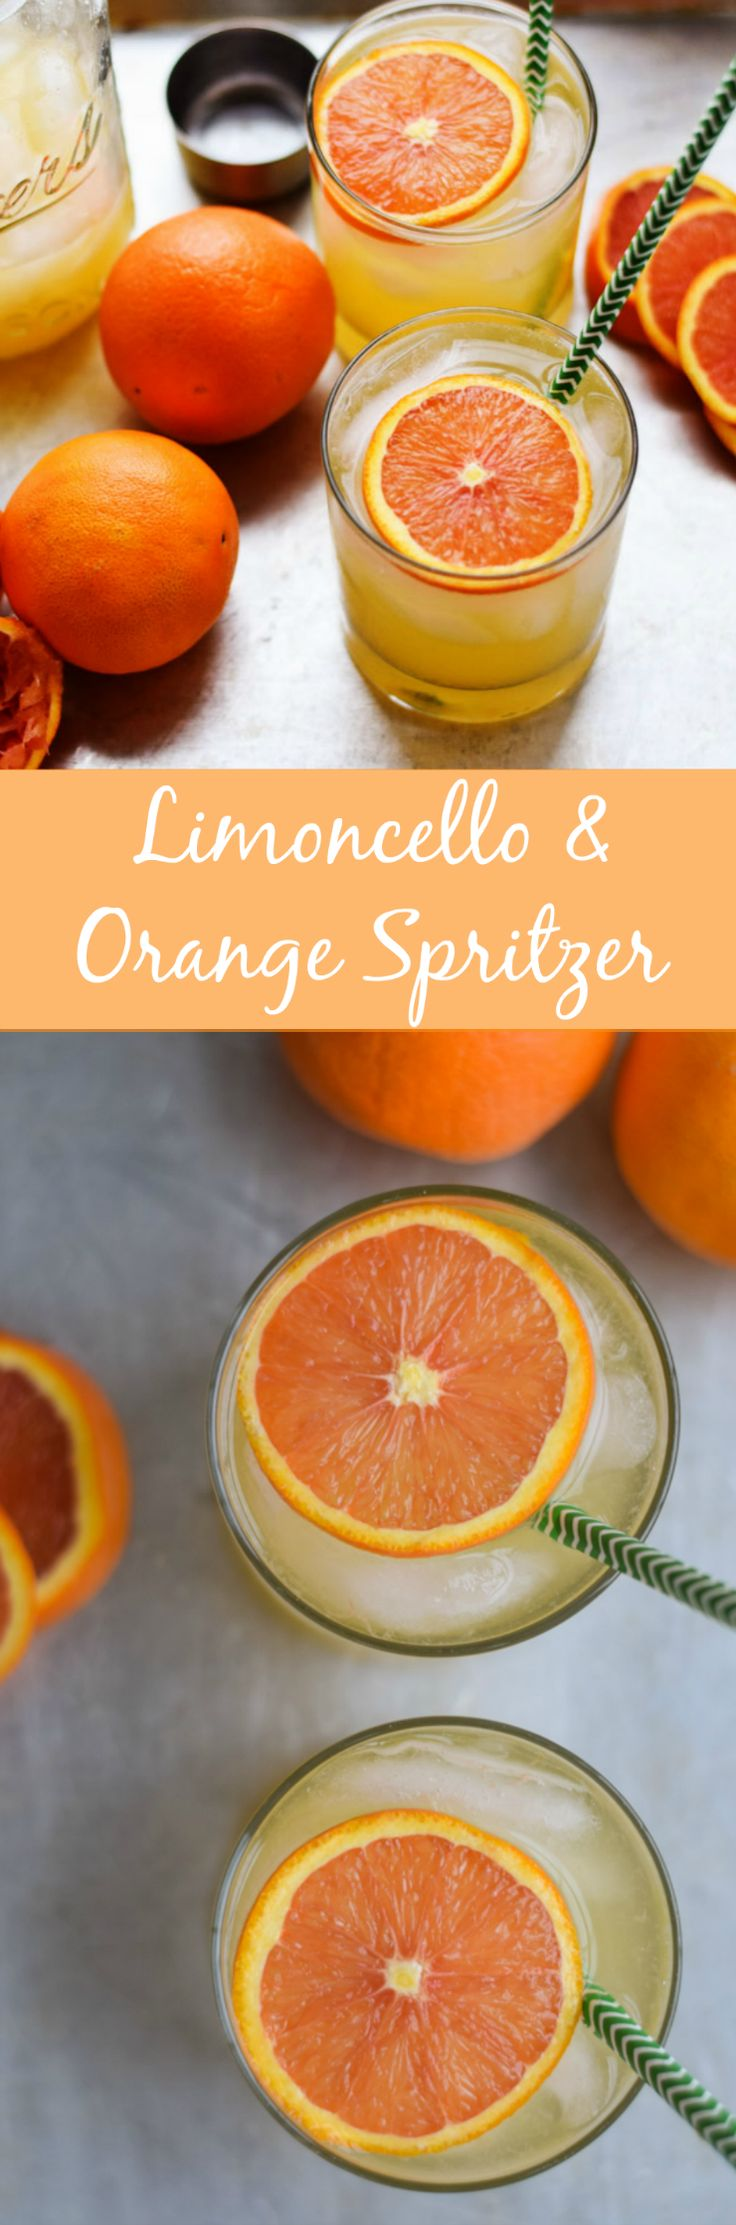 Limoncello and Orange Spritzer | A refreshing, sunny drink recipe that's perfect for any time of the year.